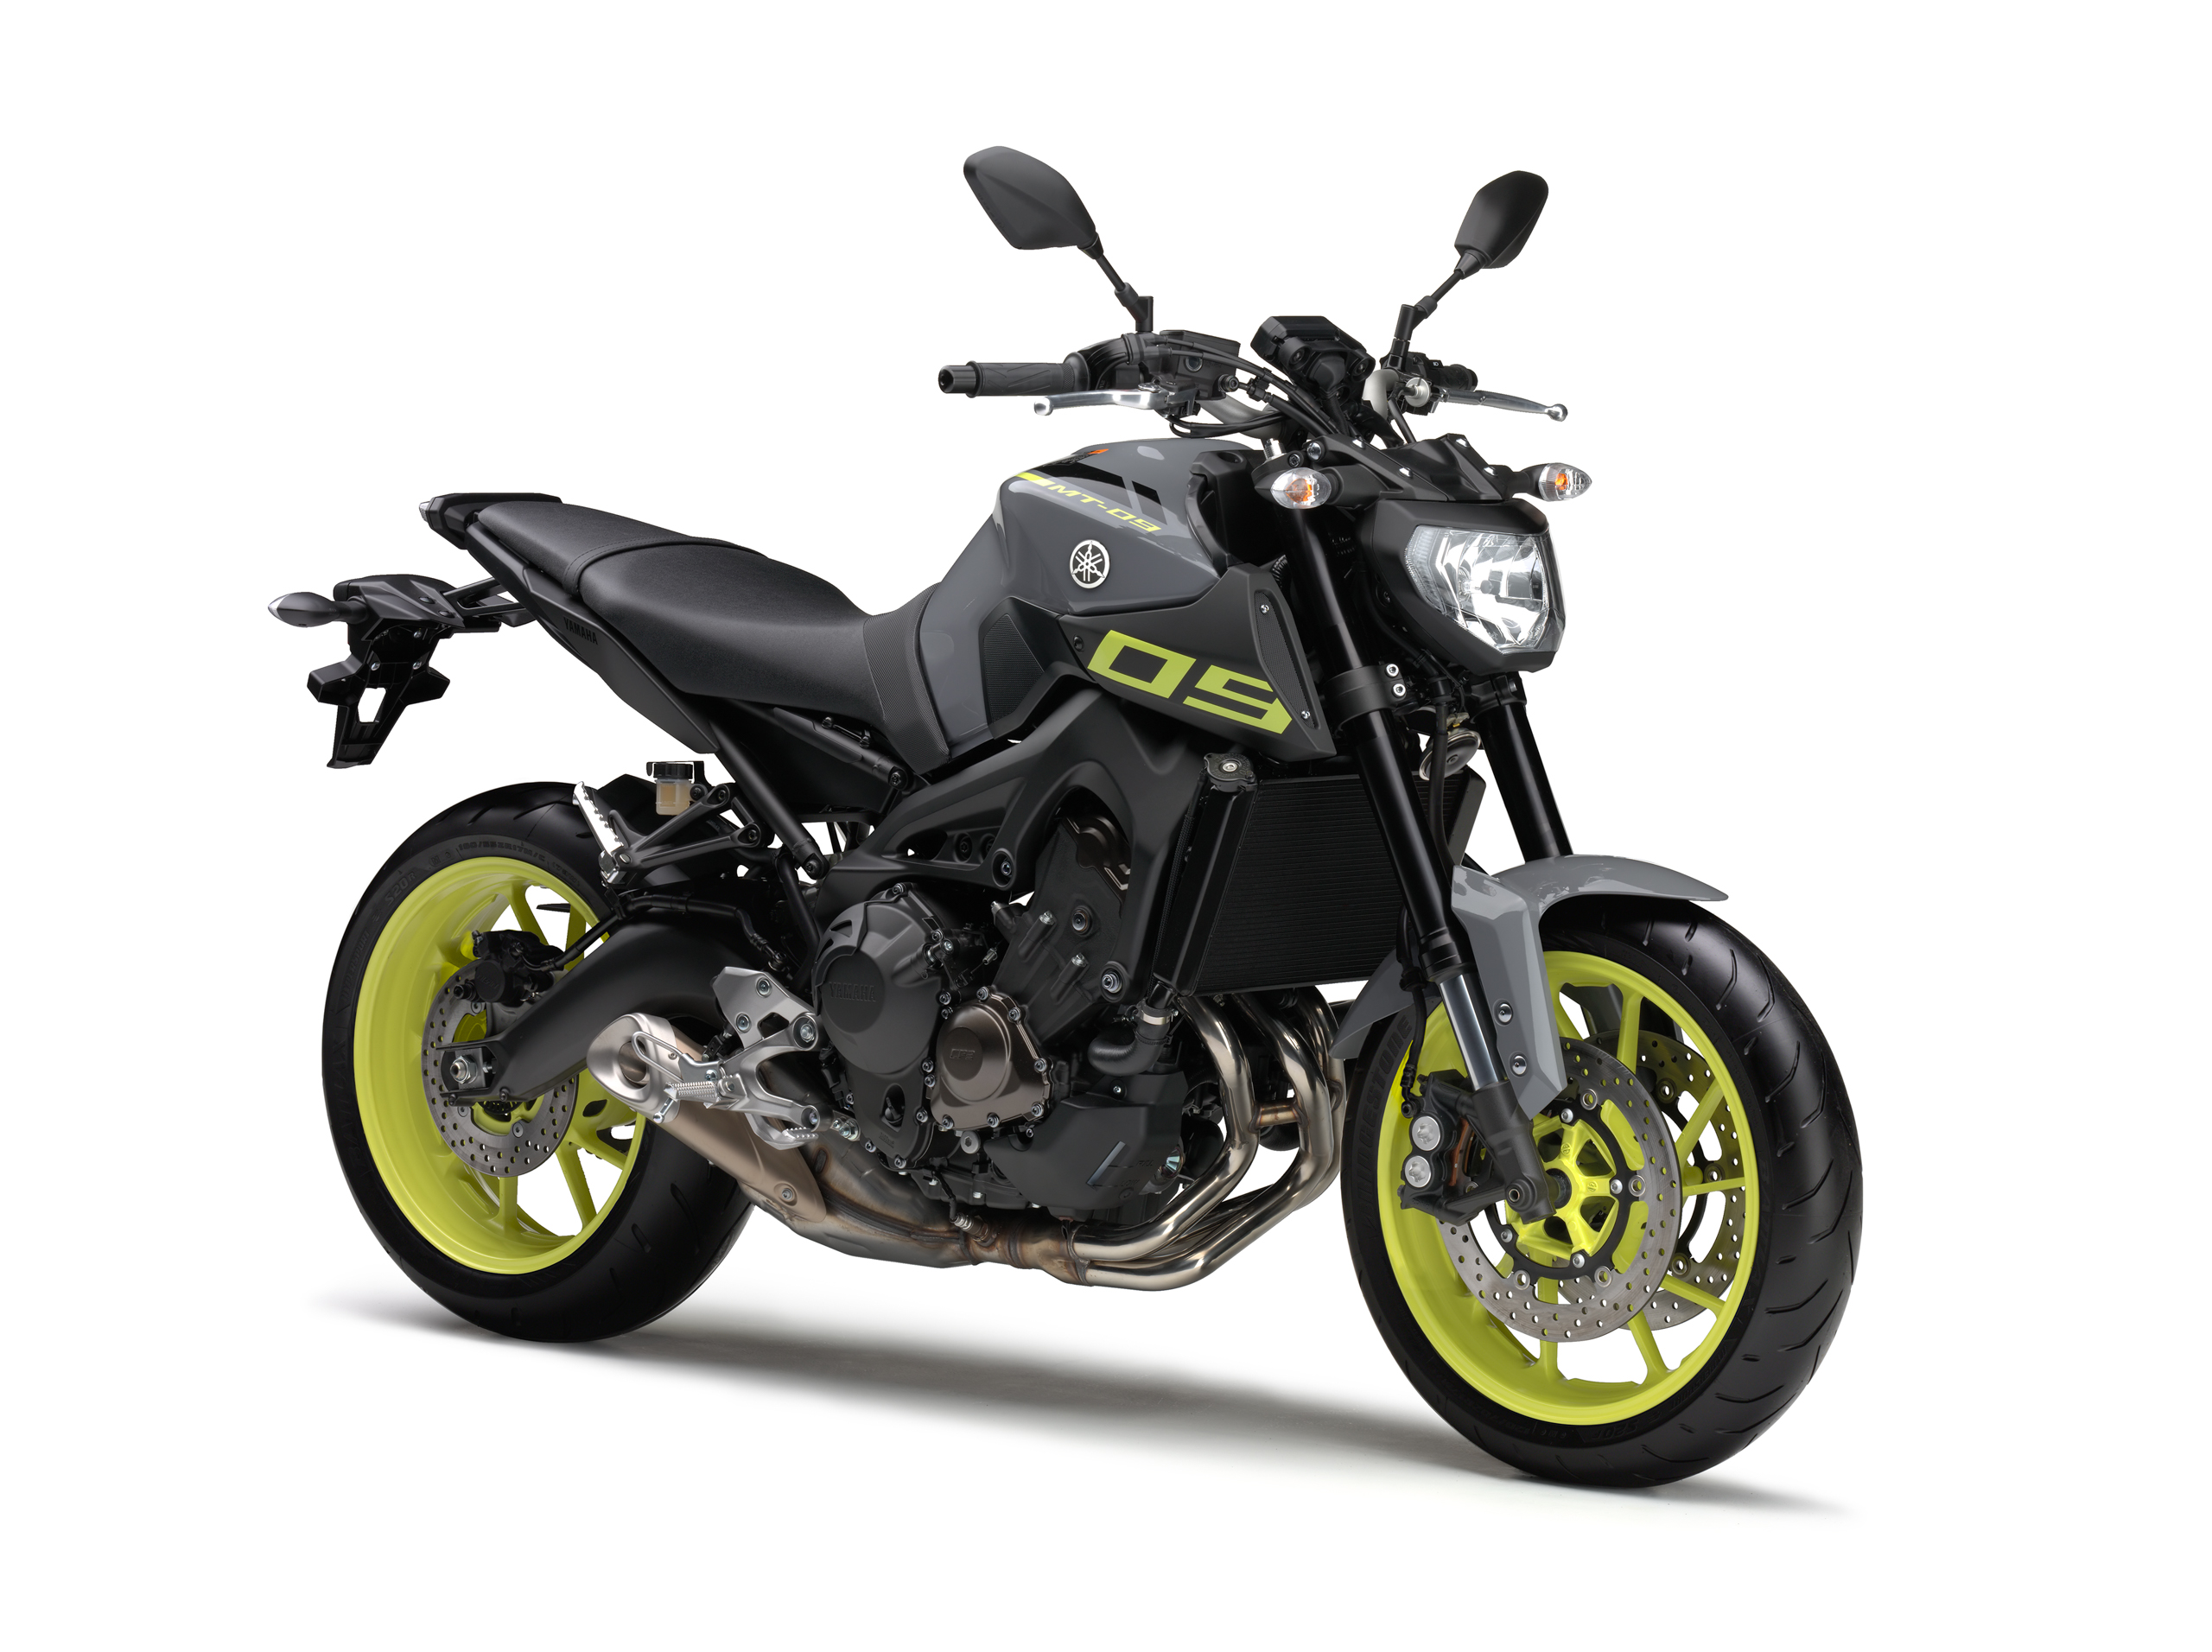 2016 yamaha mt 09 in malaysia new colours rm45k image 448731. Black Bedroom Furniture Sets. Home Design Ideas